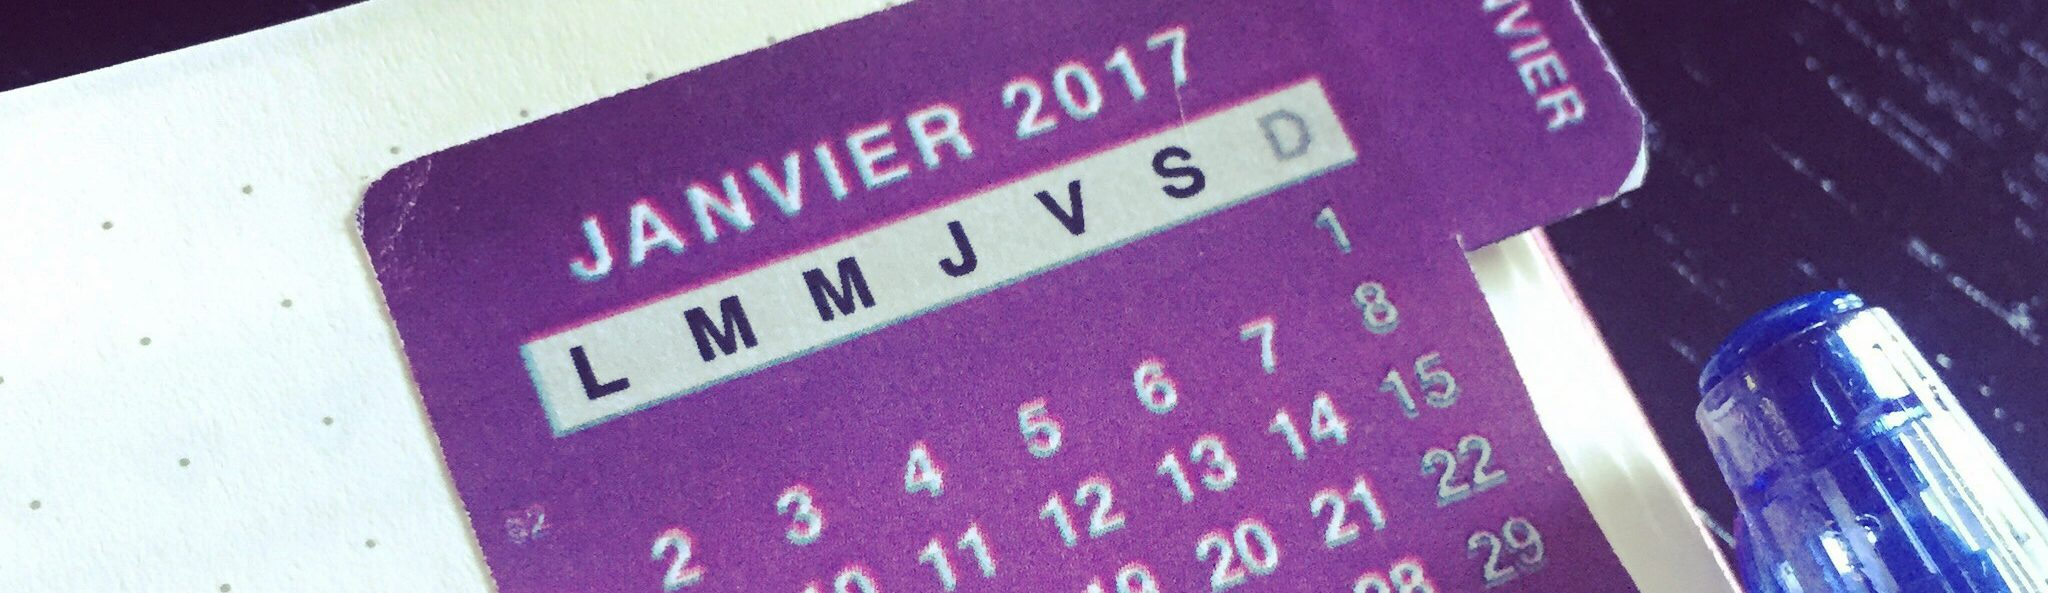 calendrier-autocollant-bullet-journal-stickers